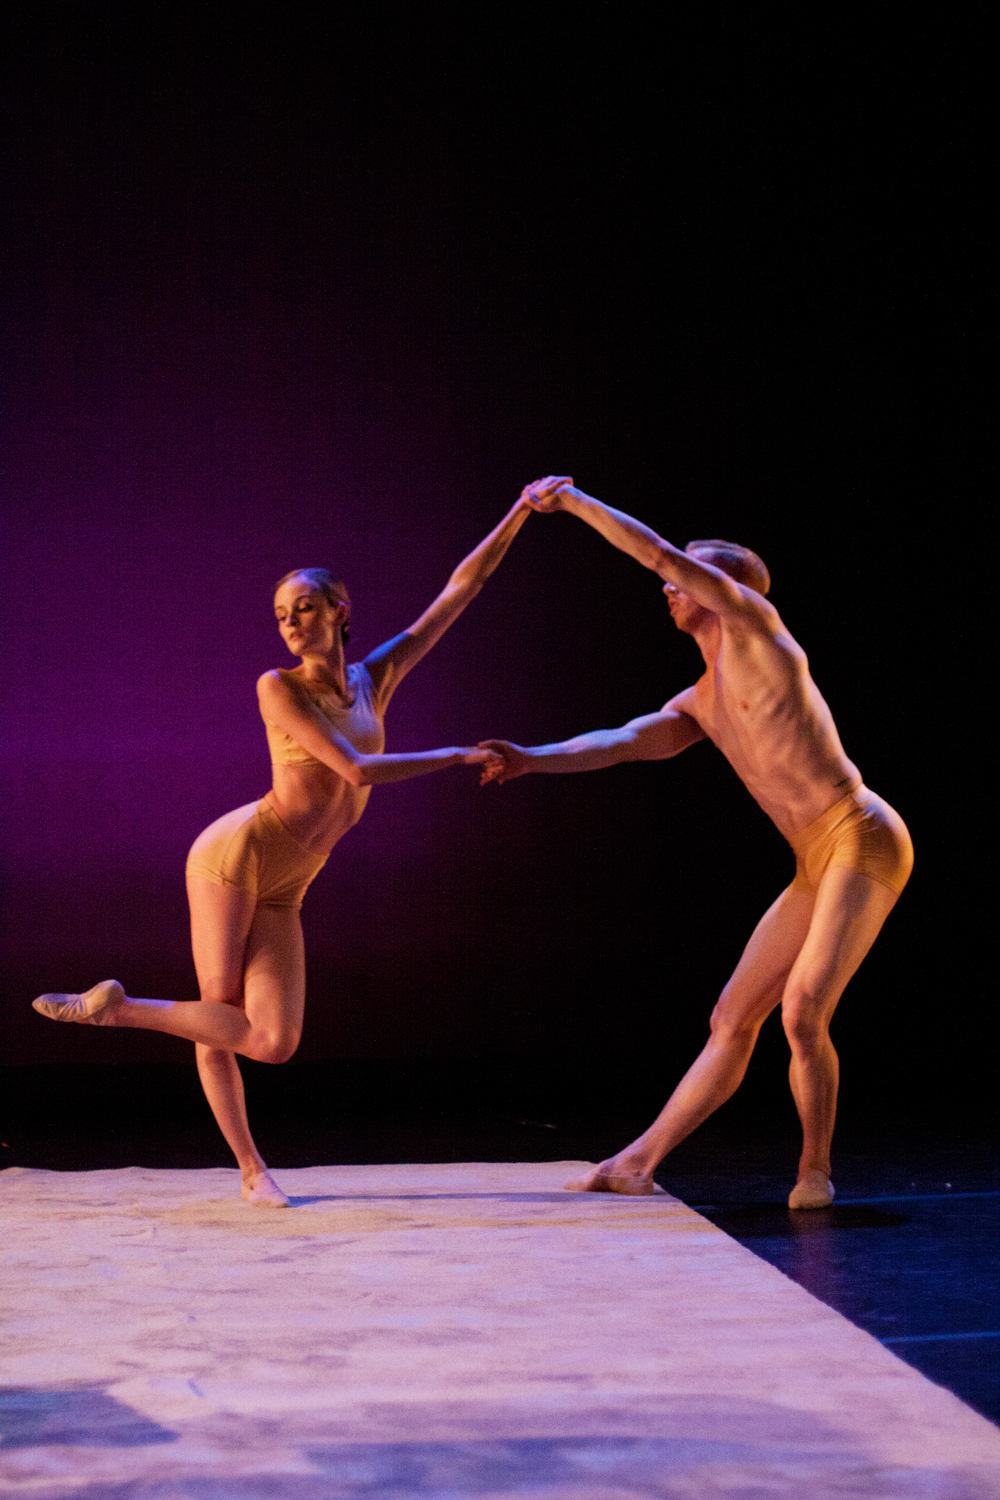 Nicole Voris and Oliver Greene-Cramer in  On Truth and Love  by Jennifer Hart.  Photo by Ballet Zaida